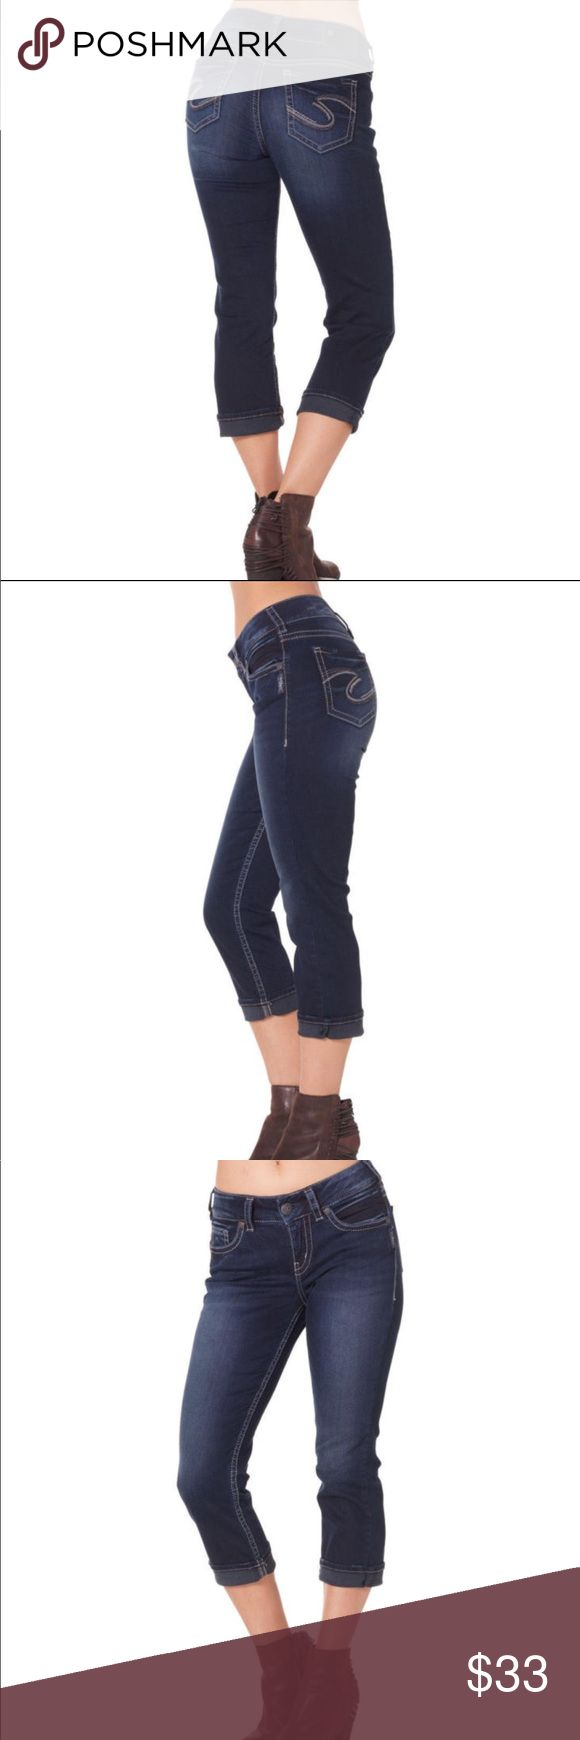 """Suki capris Silver jeans Suki mid-rise capris. Well defined curve, relaxed hip and thigh. 31"""" waist. Just enough stretch to hold their shape and no saggy tush. L43934SSD487. Silver Jeans Jeans"""